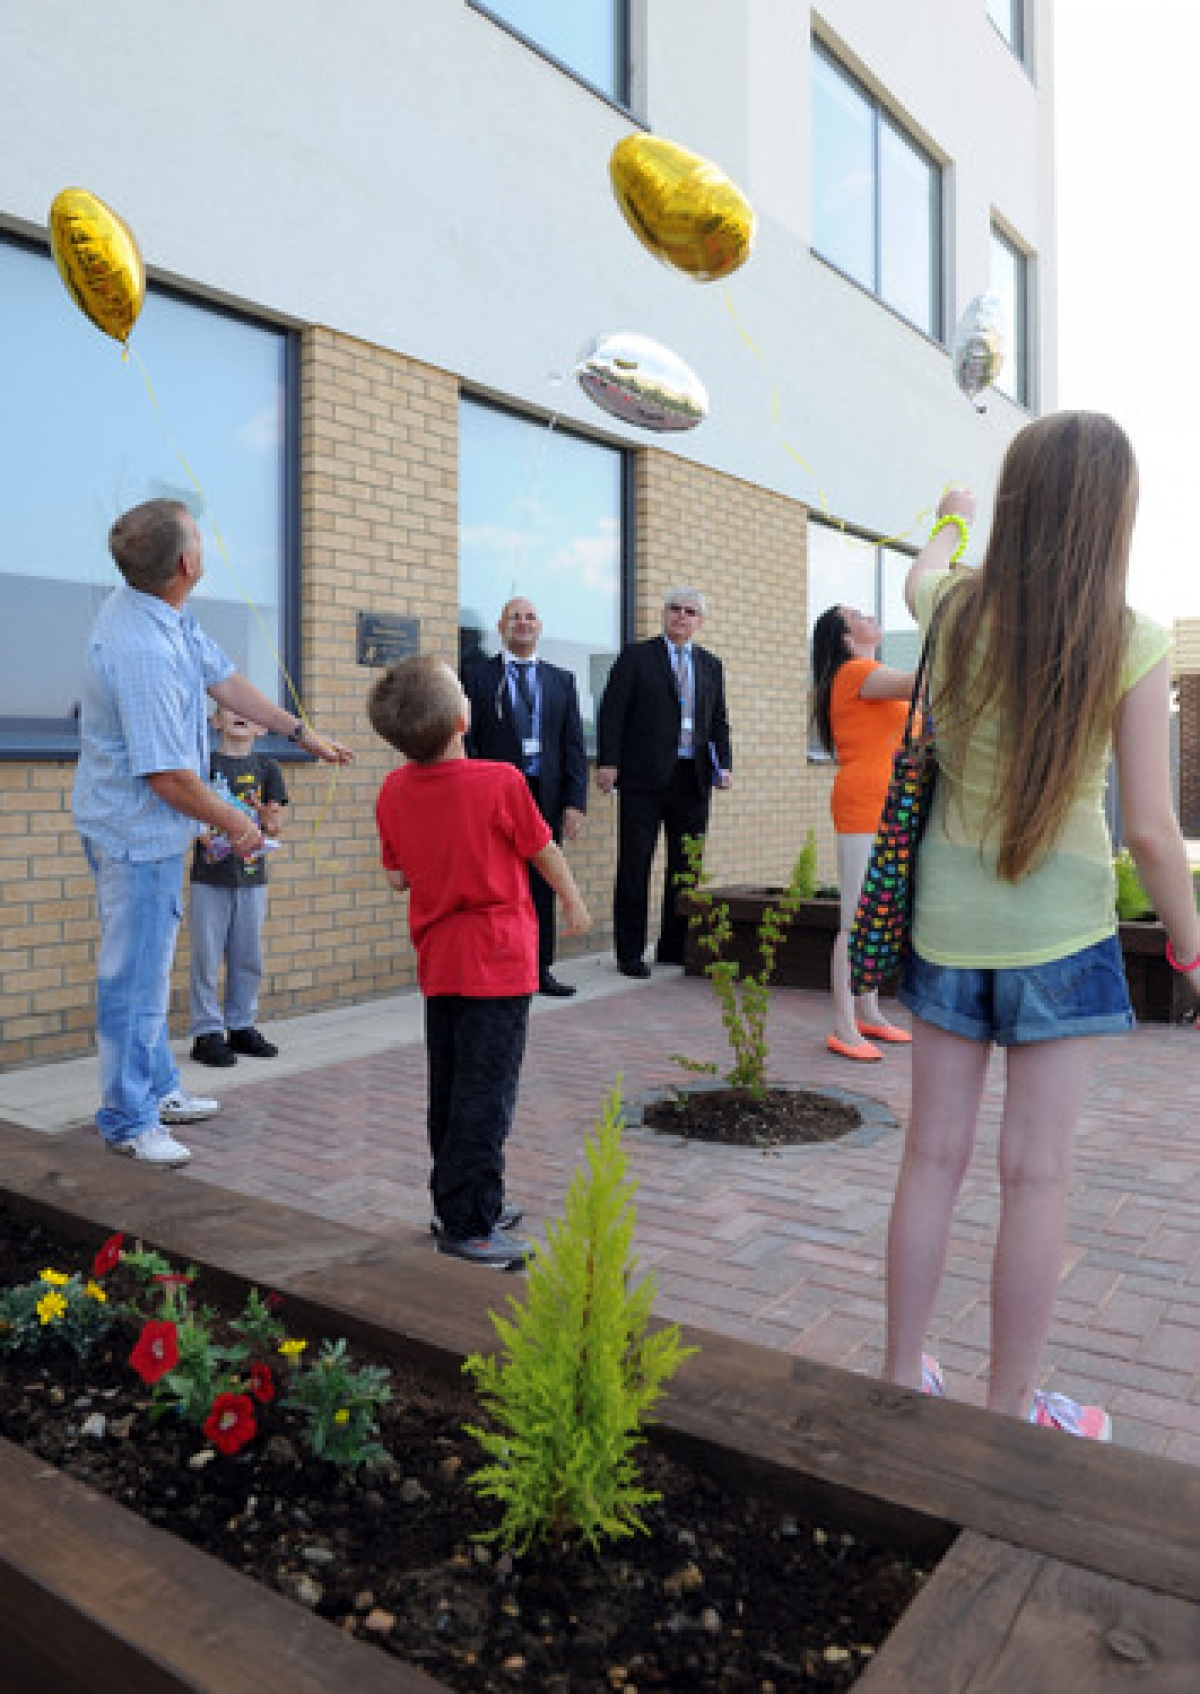 Balloons are released at the opening of the Brad Baldwin Memorial Garden